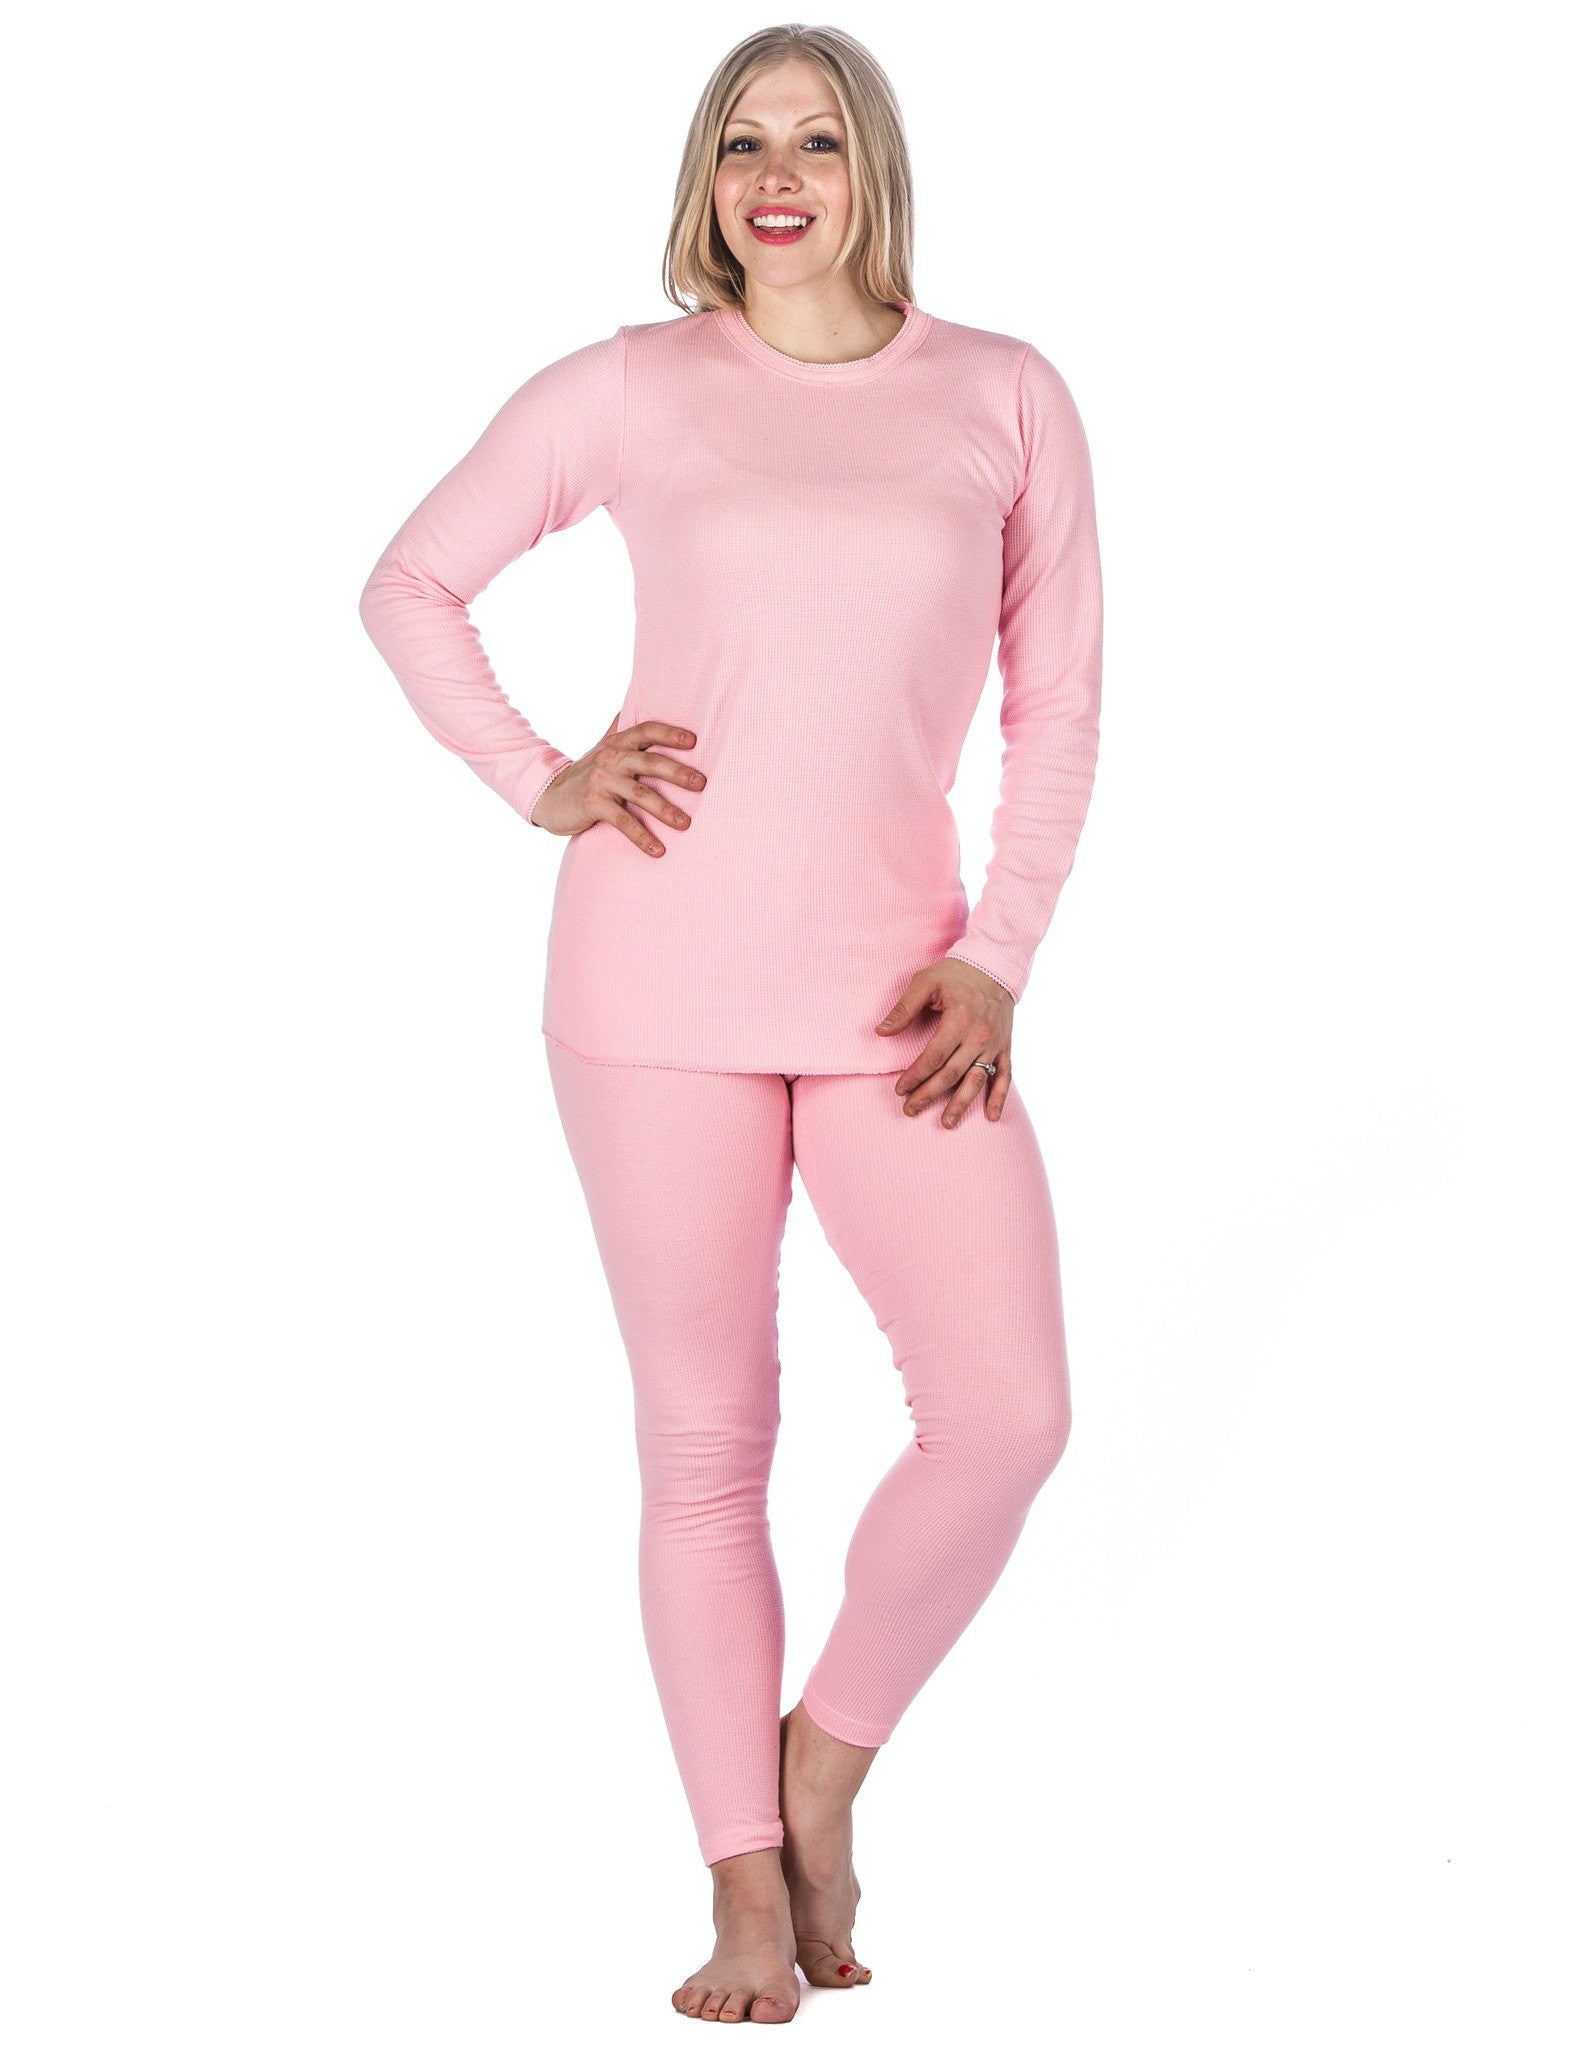 Women's Extreme Cold Waffle Knit Thermal Top and Bottom Set